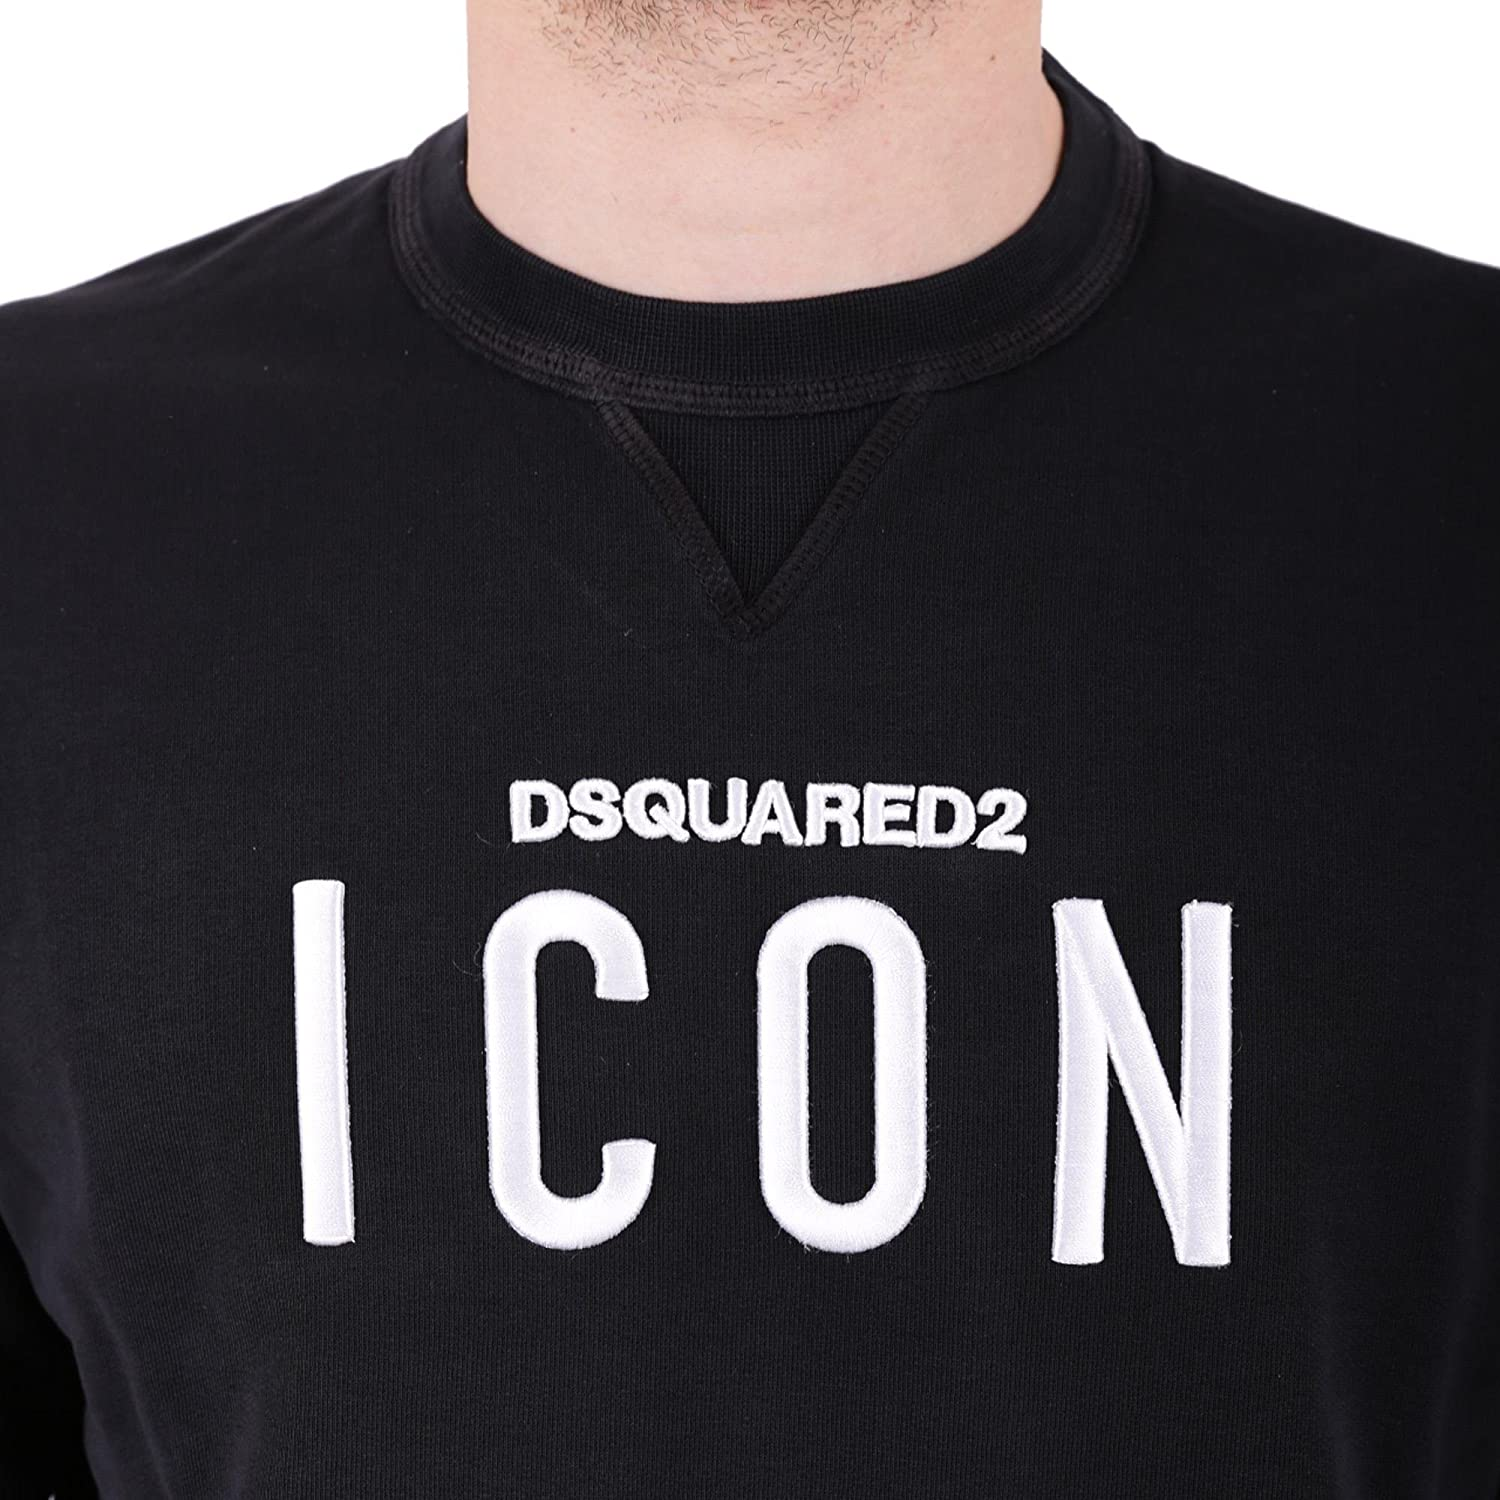 DSQUARED2 Felpa con Patch Icon Ricamato Nero Uomo S  Amazon.it   Abbigliamento 045e6f6bfbd